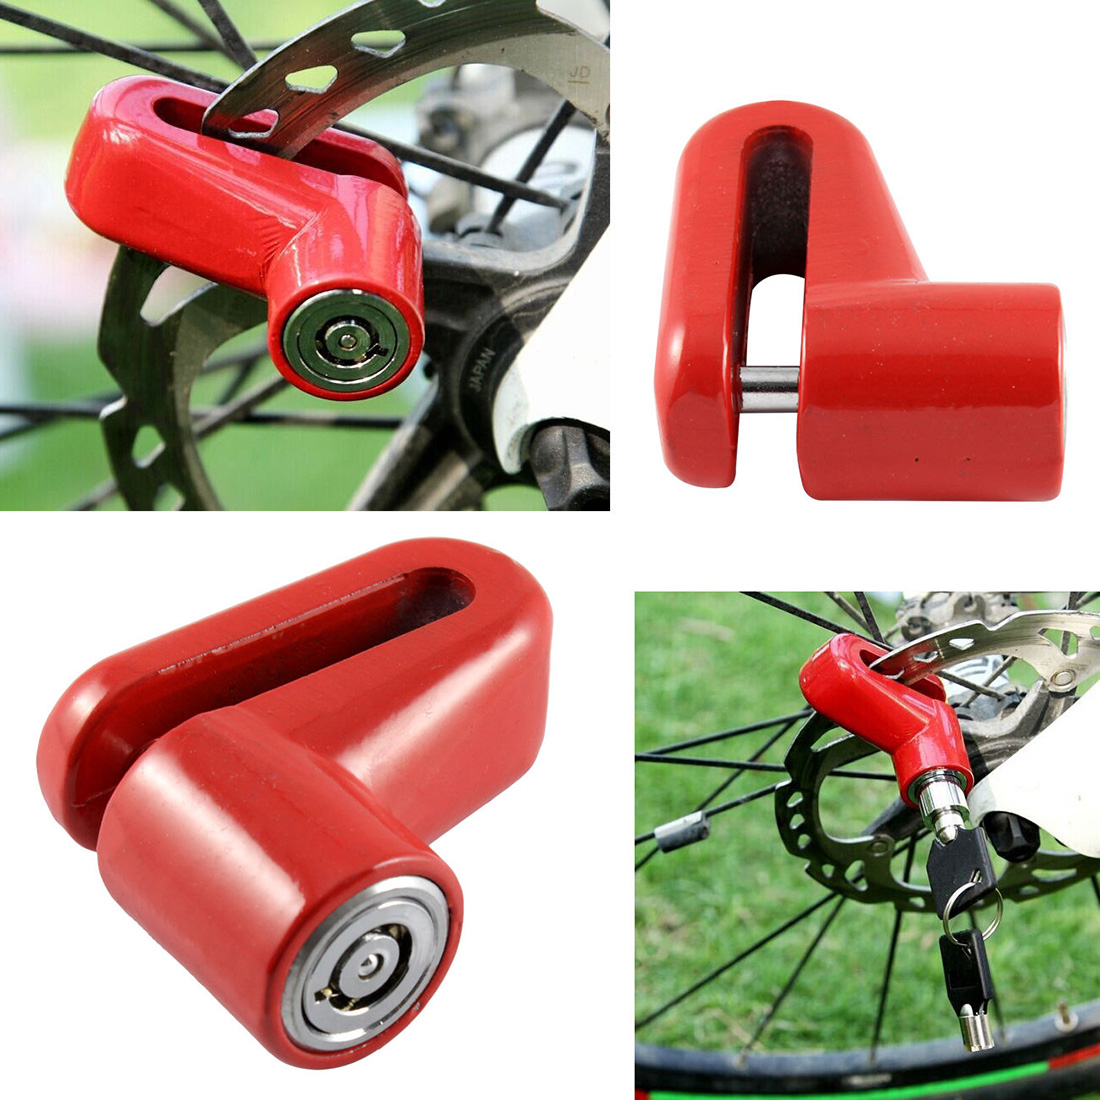 CAR-partment Good Quality Motorcycle Bicycle Sturdy Wheel Disc Brake Lock Security Anti Thief Alarm Disk Disc Brake Rotor Lock